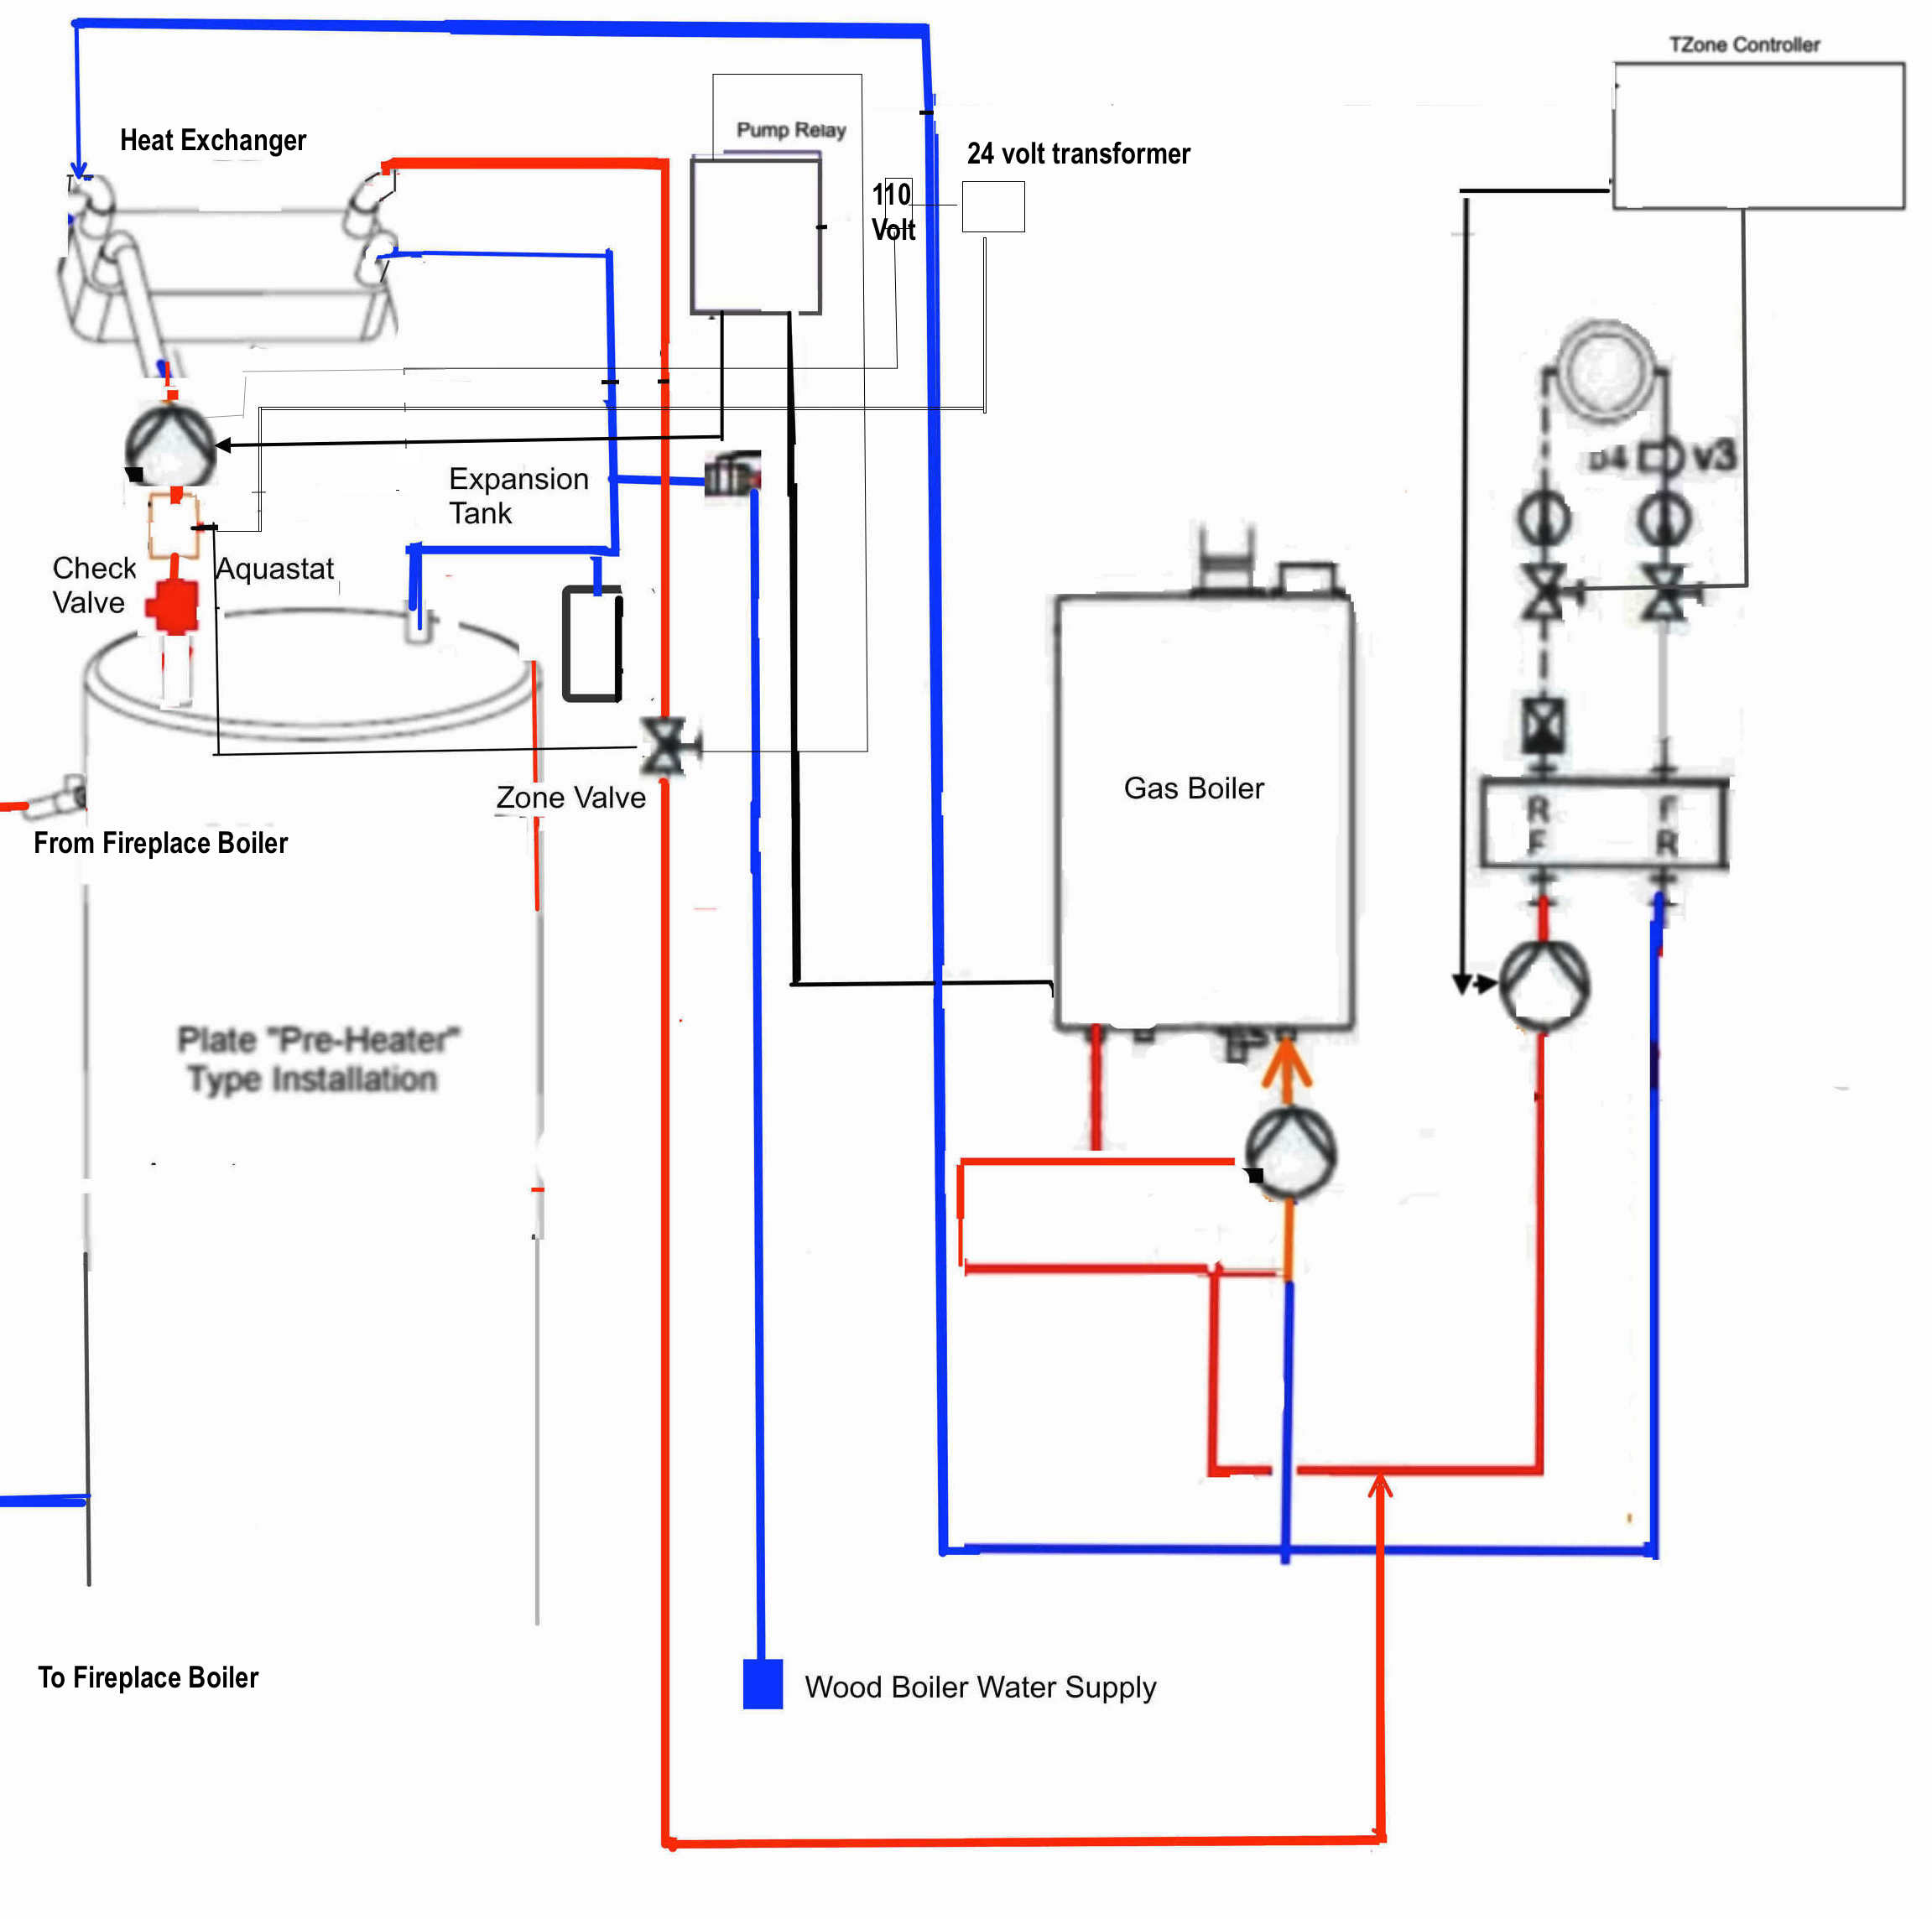 Super Boiler Control Wiring Diagrams Basic Electronics Wiring Diagram Wiring Cloud Favobieswglorg